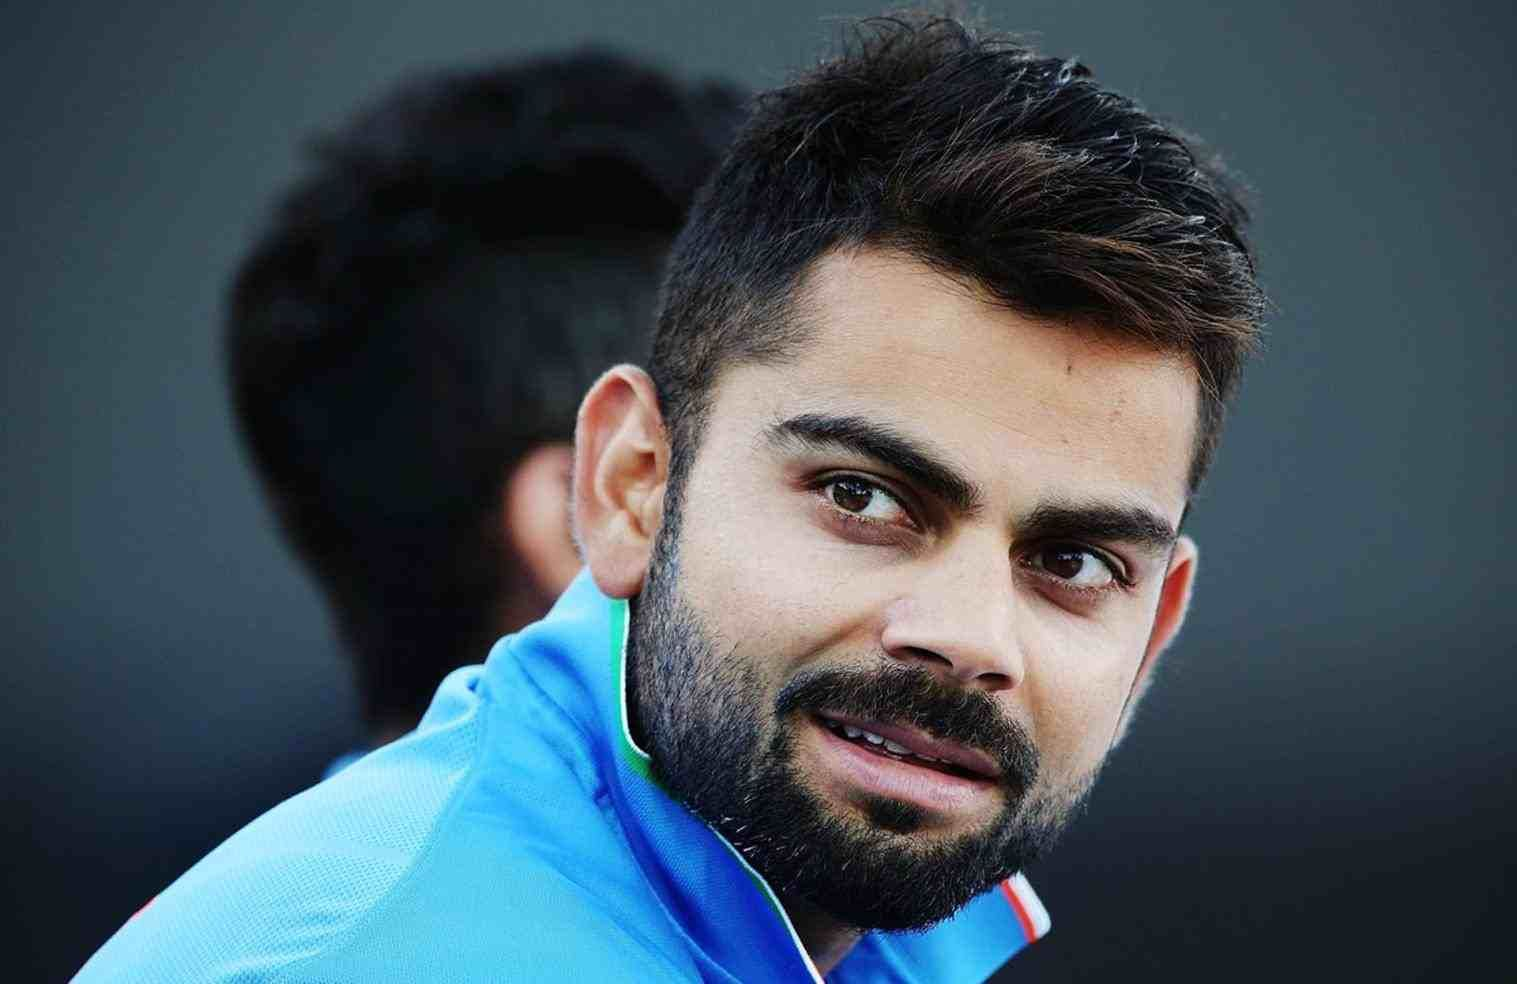 Virat Kohli Hairstyle In T20 World Cup 2016 Hair Stylist And